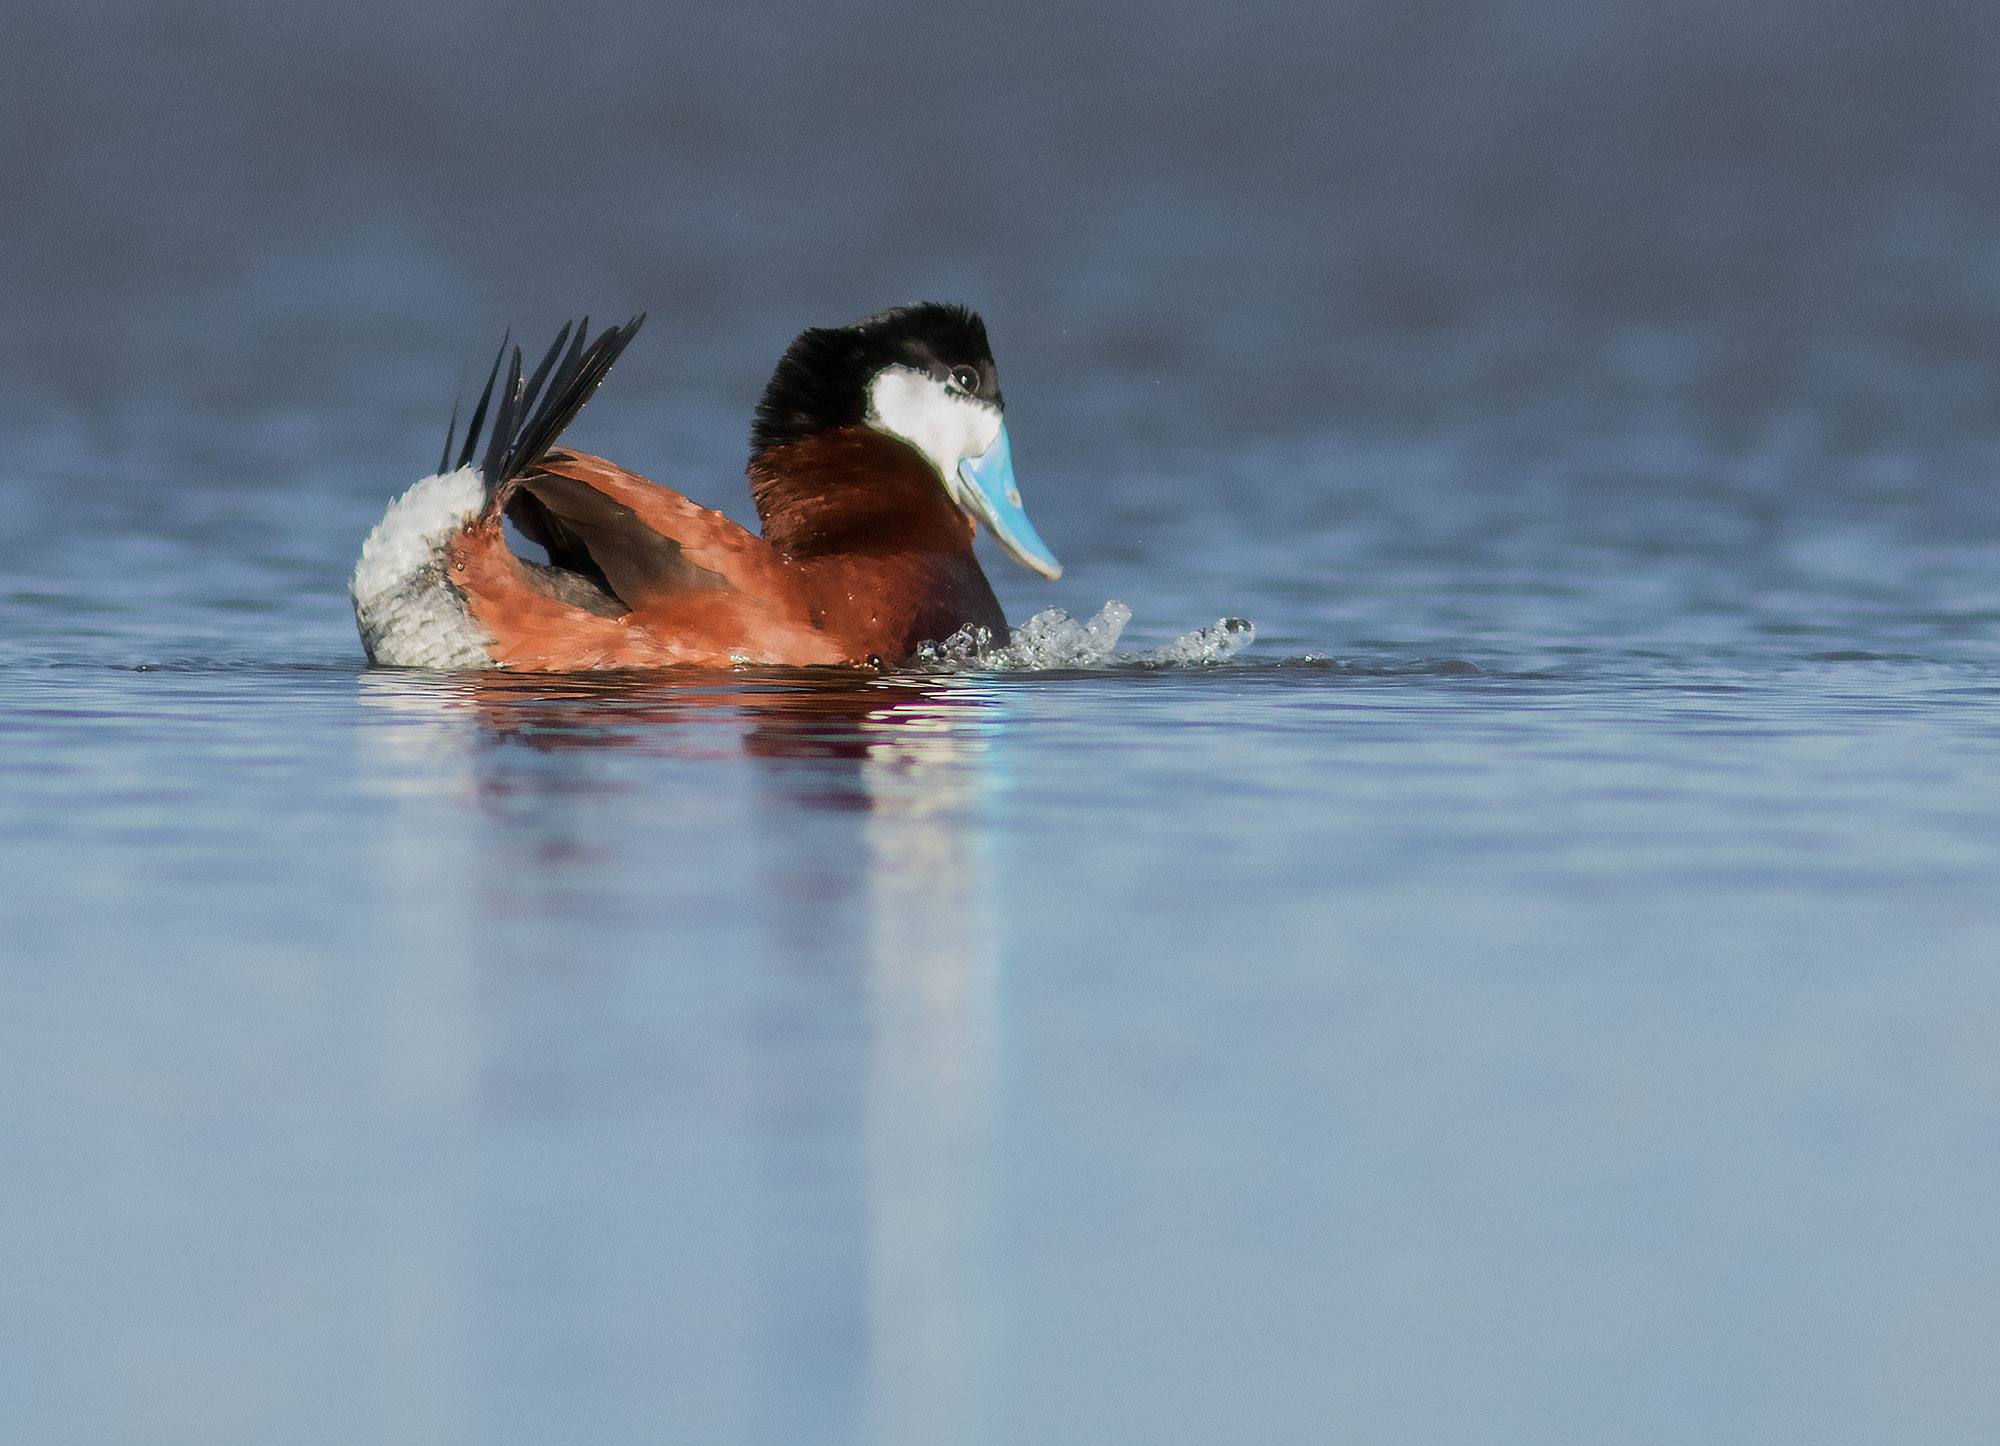 Displaying Ruddy Duck